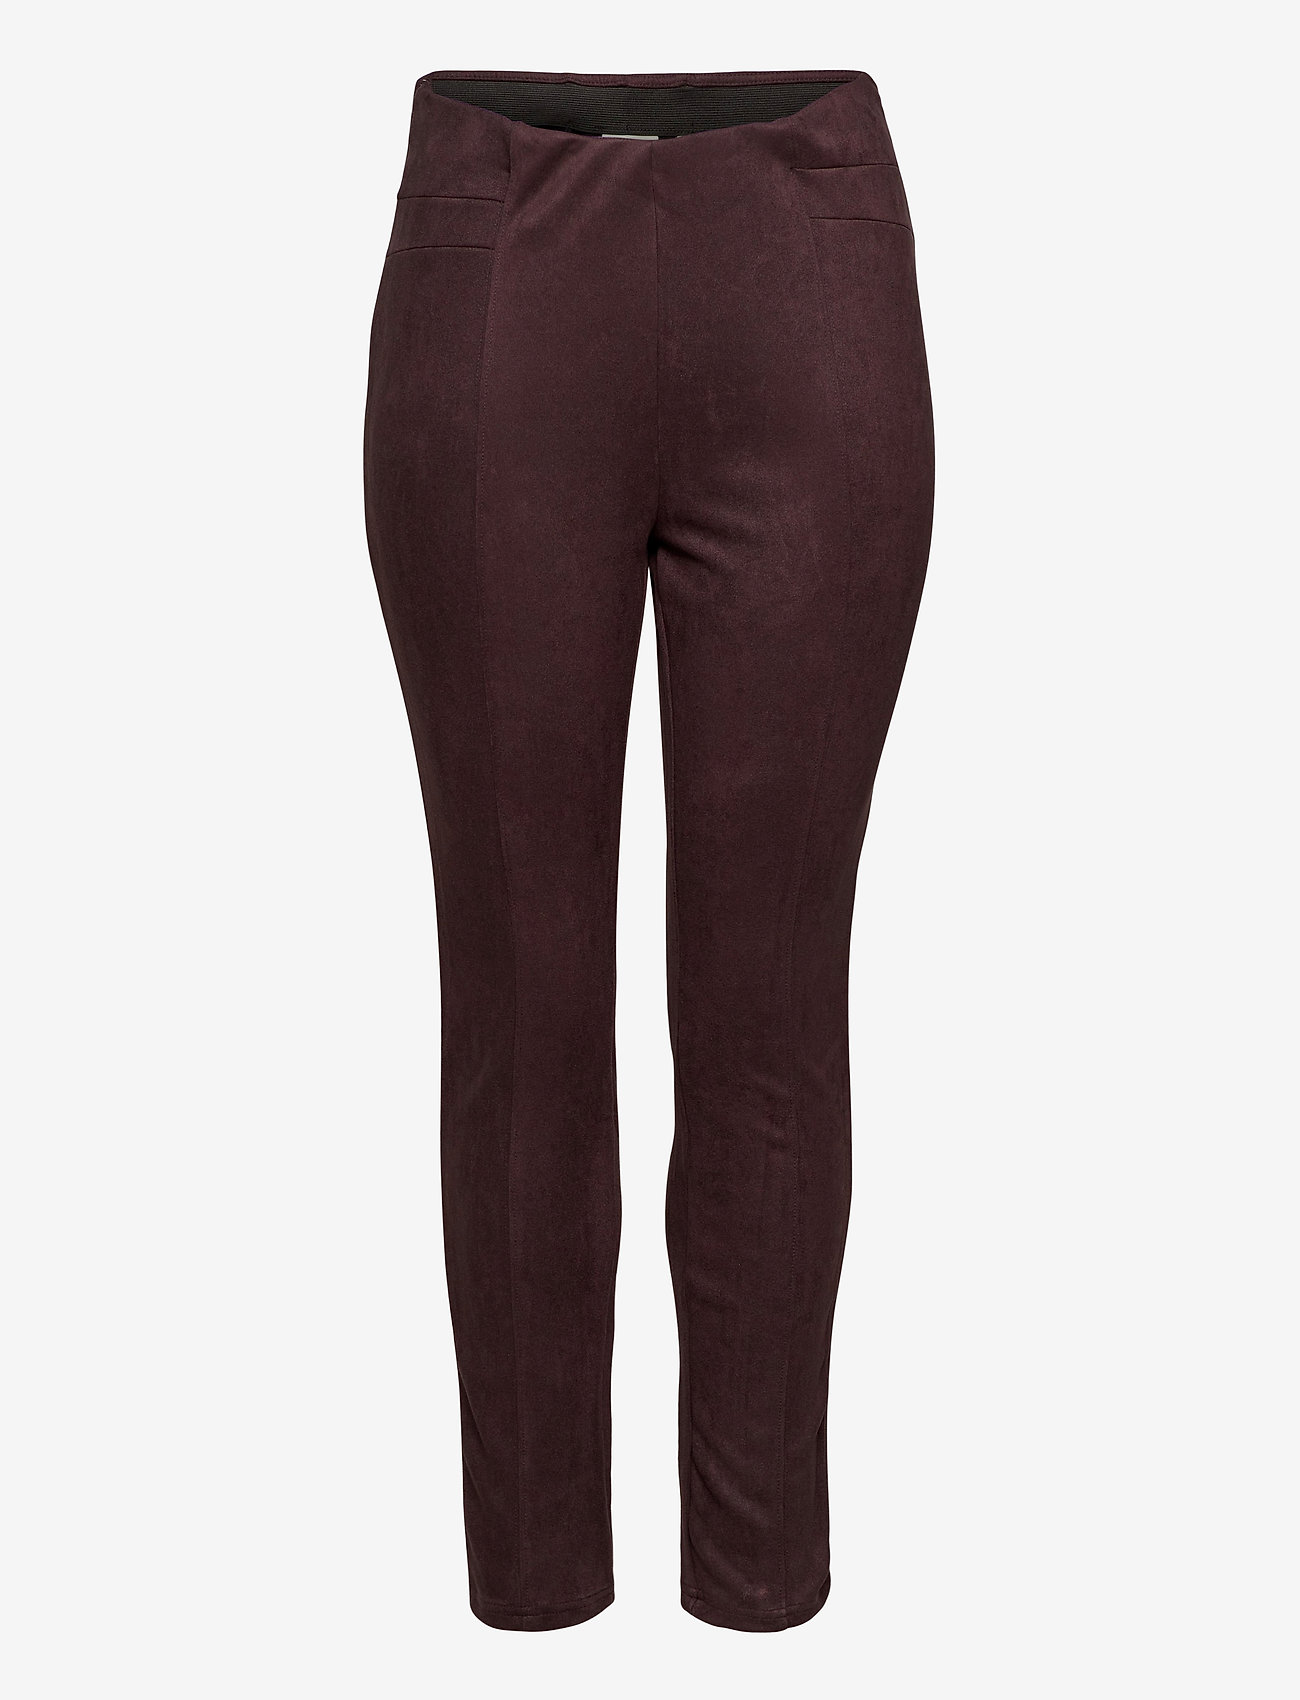 JunaRose - JRATONIA LEGGINGS - S - nahka - chocolate plum - 0